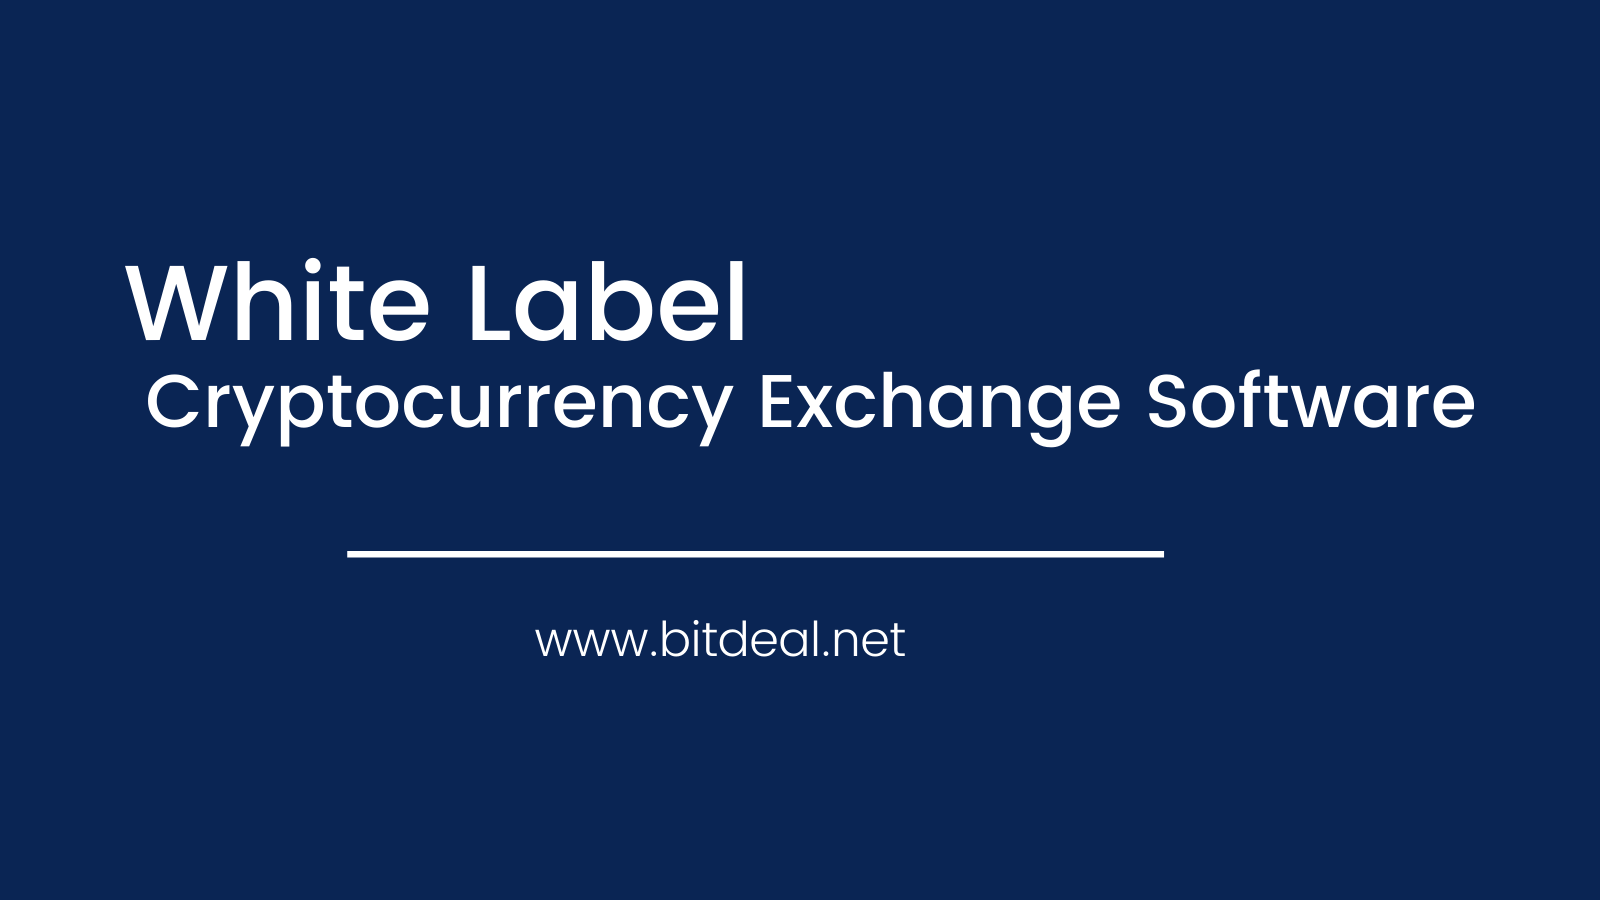 What Is White Label Cryptocurrency Exchange Software? : Beginners Guide